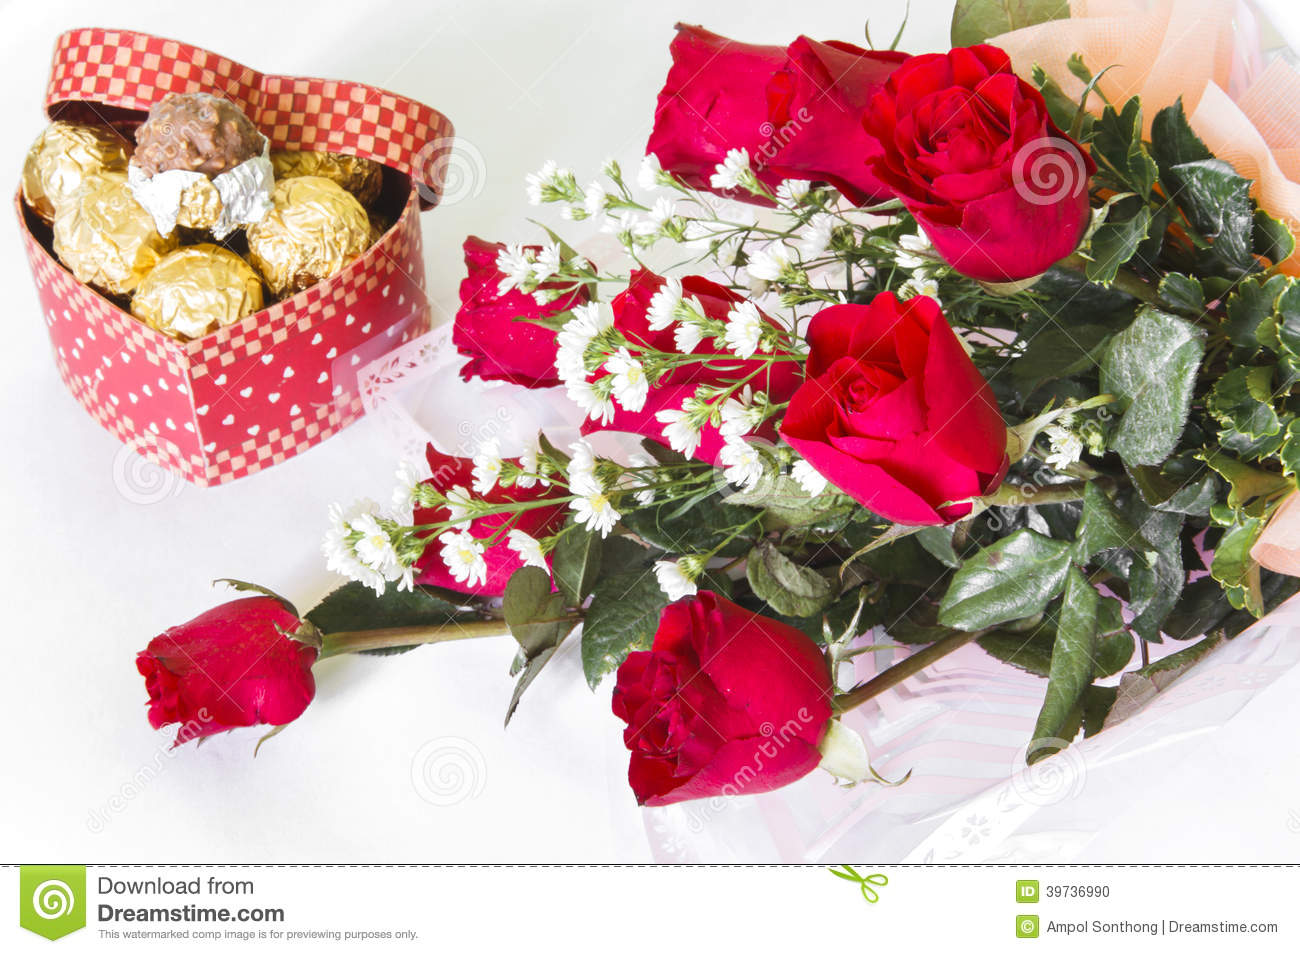 Red Rose Flower Bouquet With Chocolate Ball Stock Photo - Image of ...